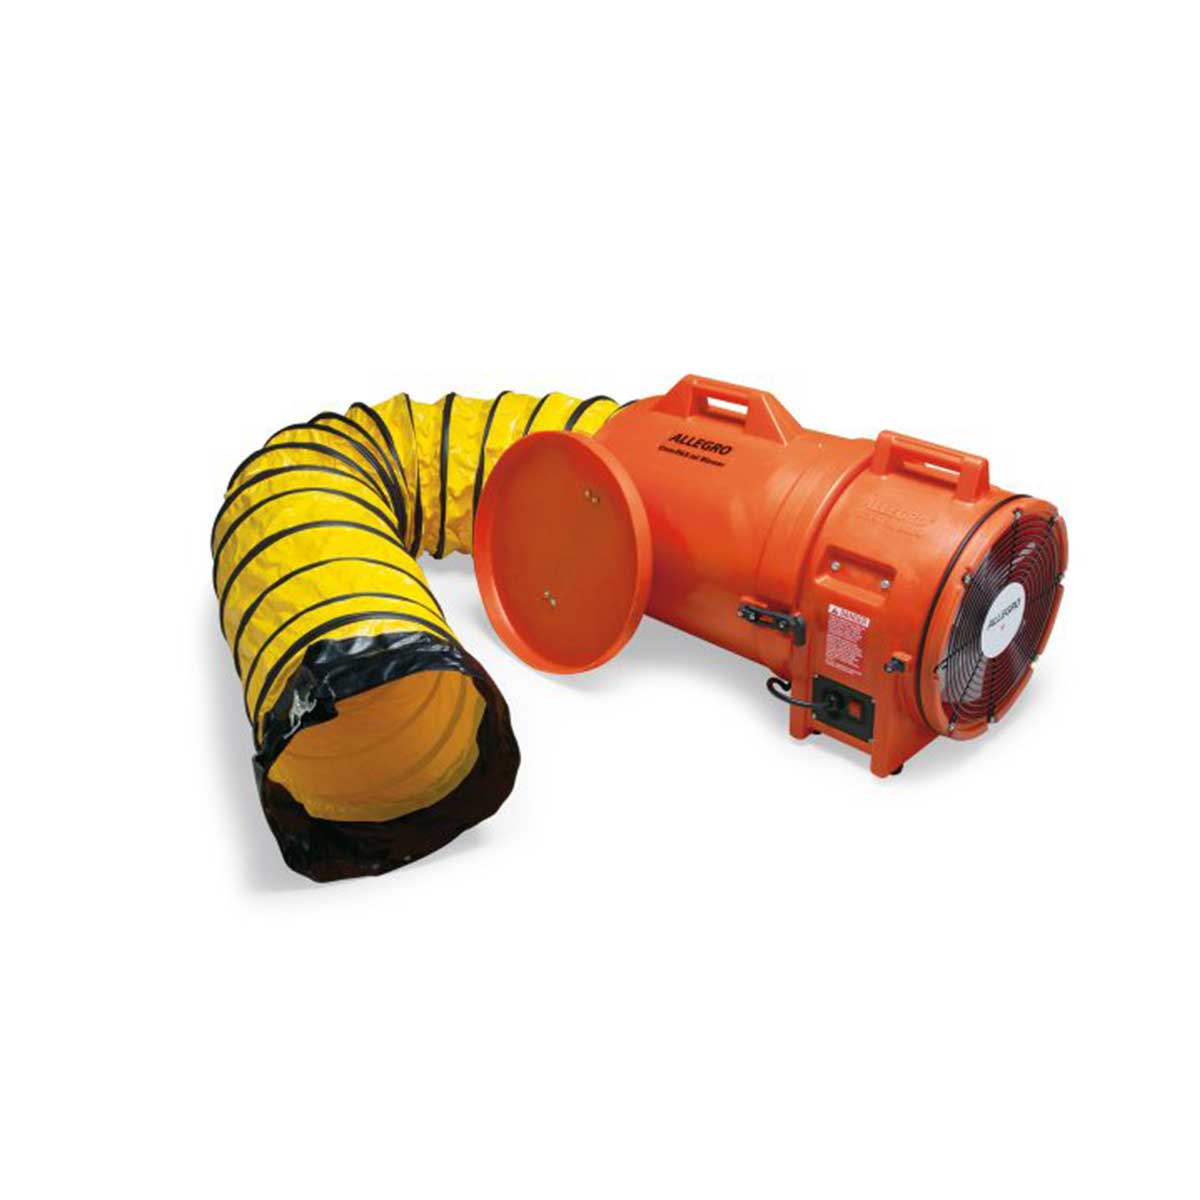 12″ Axial AC Plastic Blower w/ Canister & 15′ Ducting. Part: ALL-9543‐15. Pkg: 1